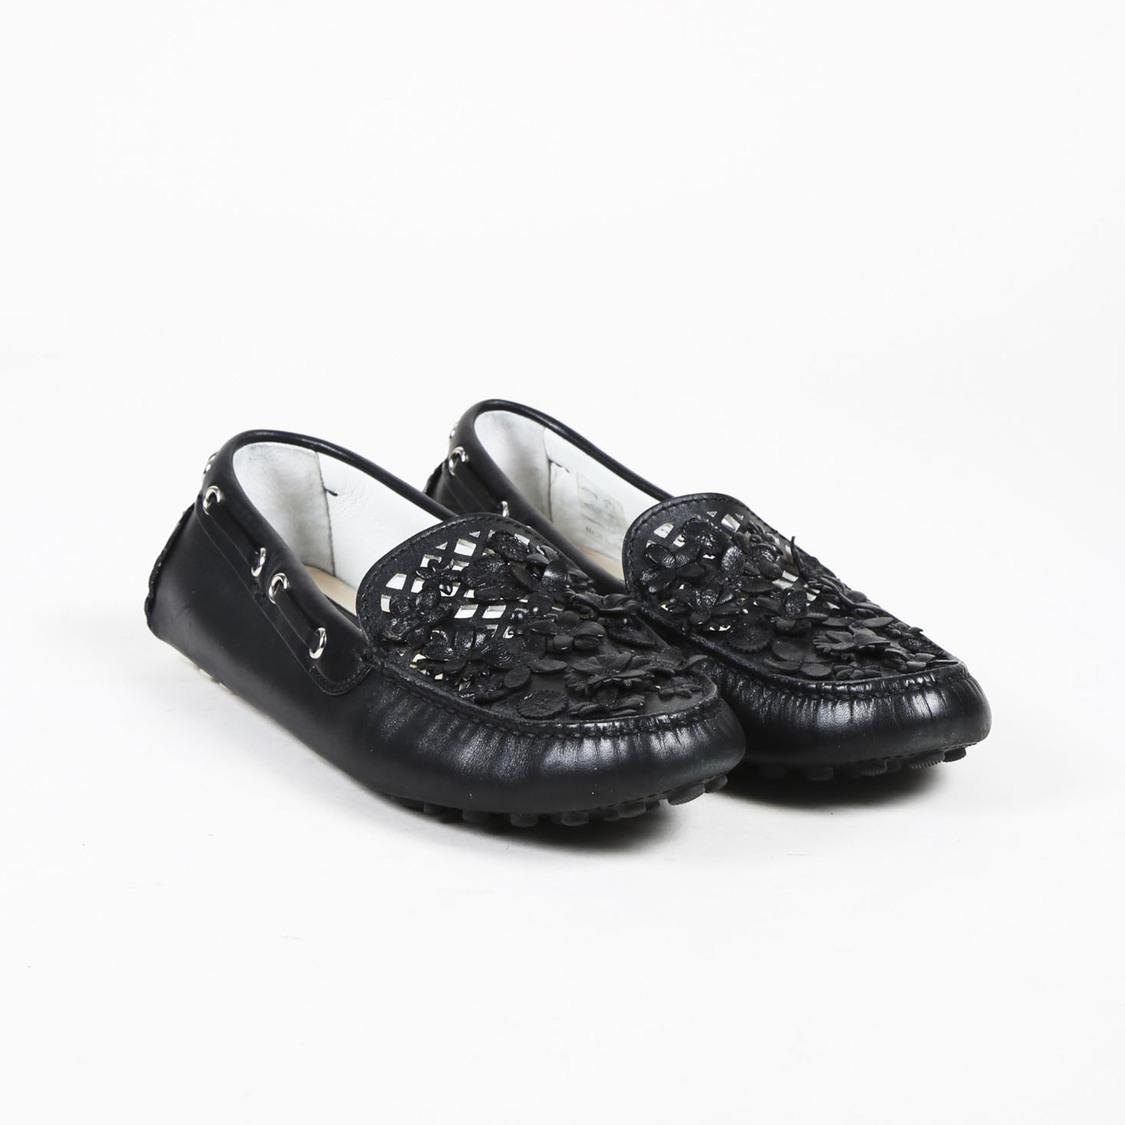 f28ffb3e197 Dior Black Leather Floral Applique Driving Loafers in Black - Lyst